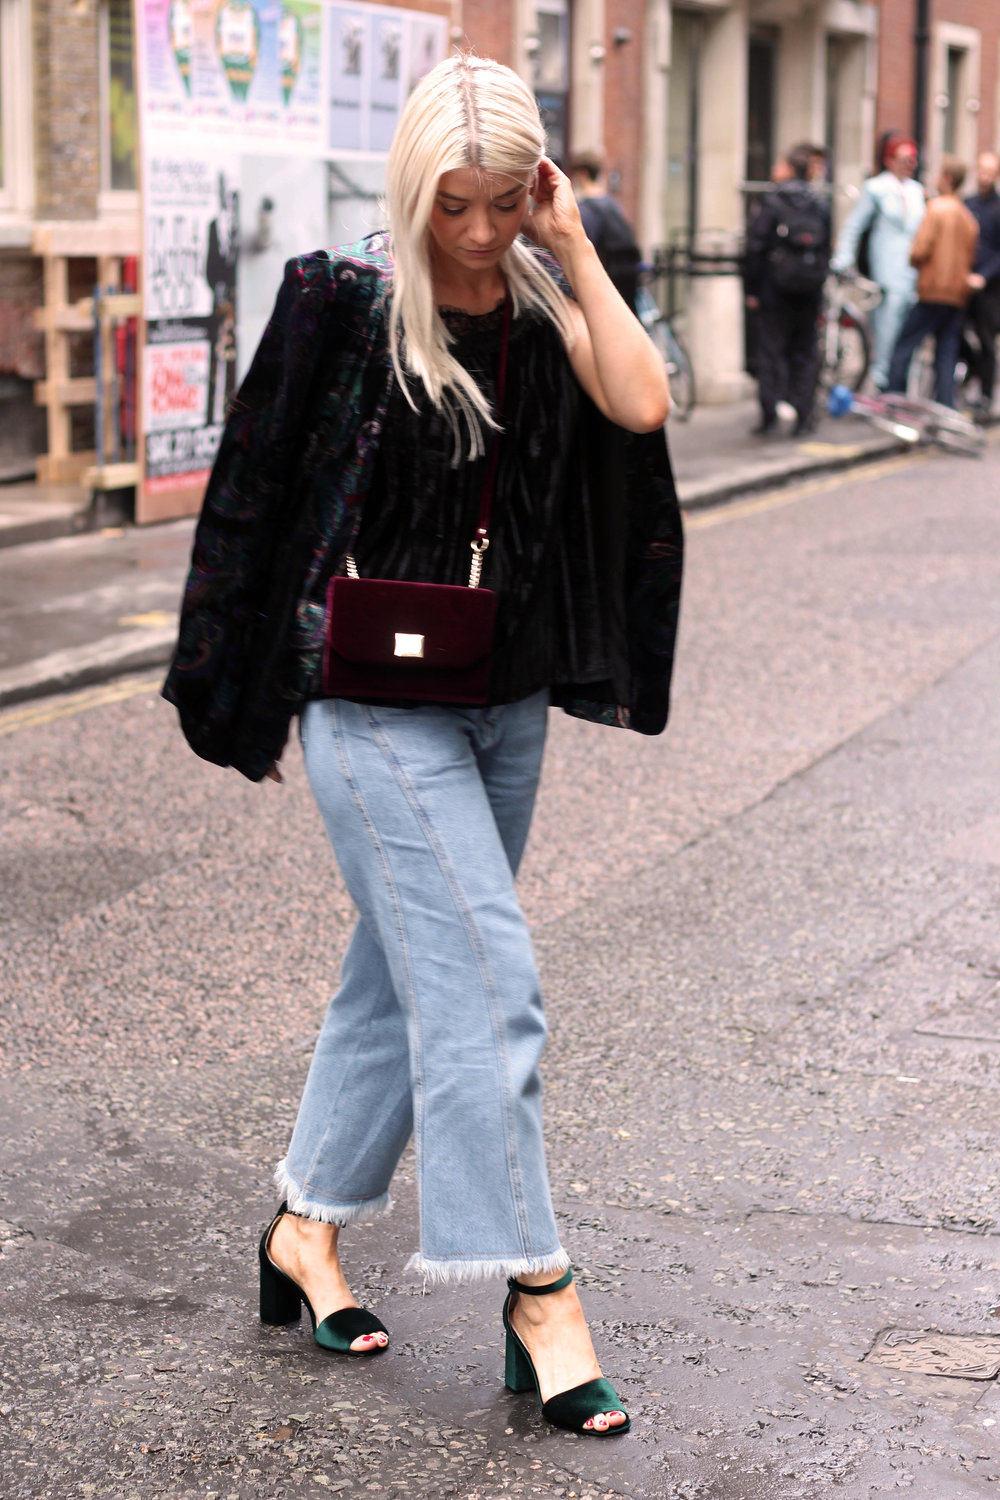 monsoon velvet collection, topshop jeans, chunky sandals, northern magpie, joey taylor 2